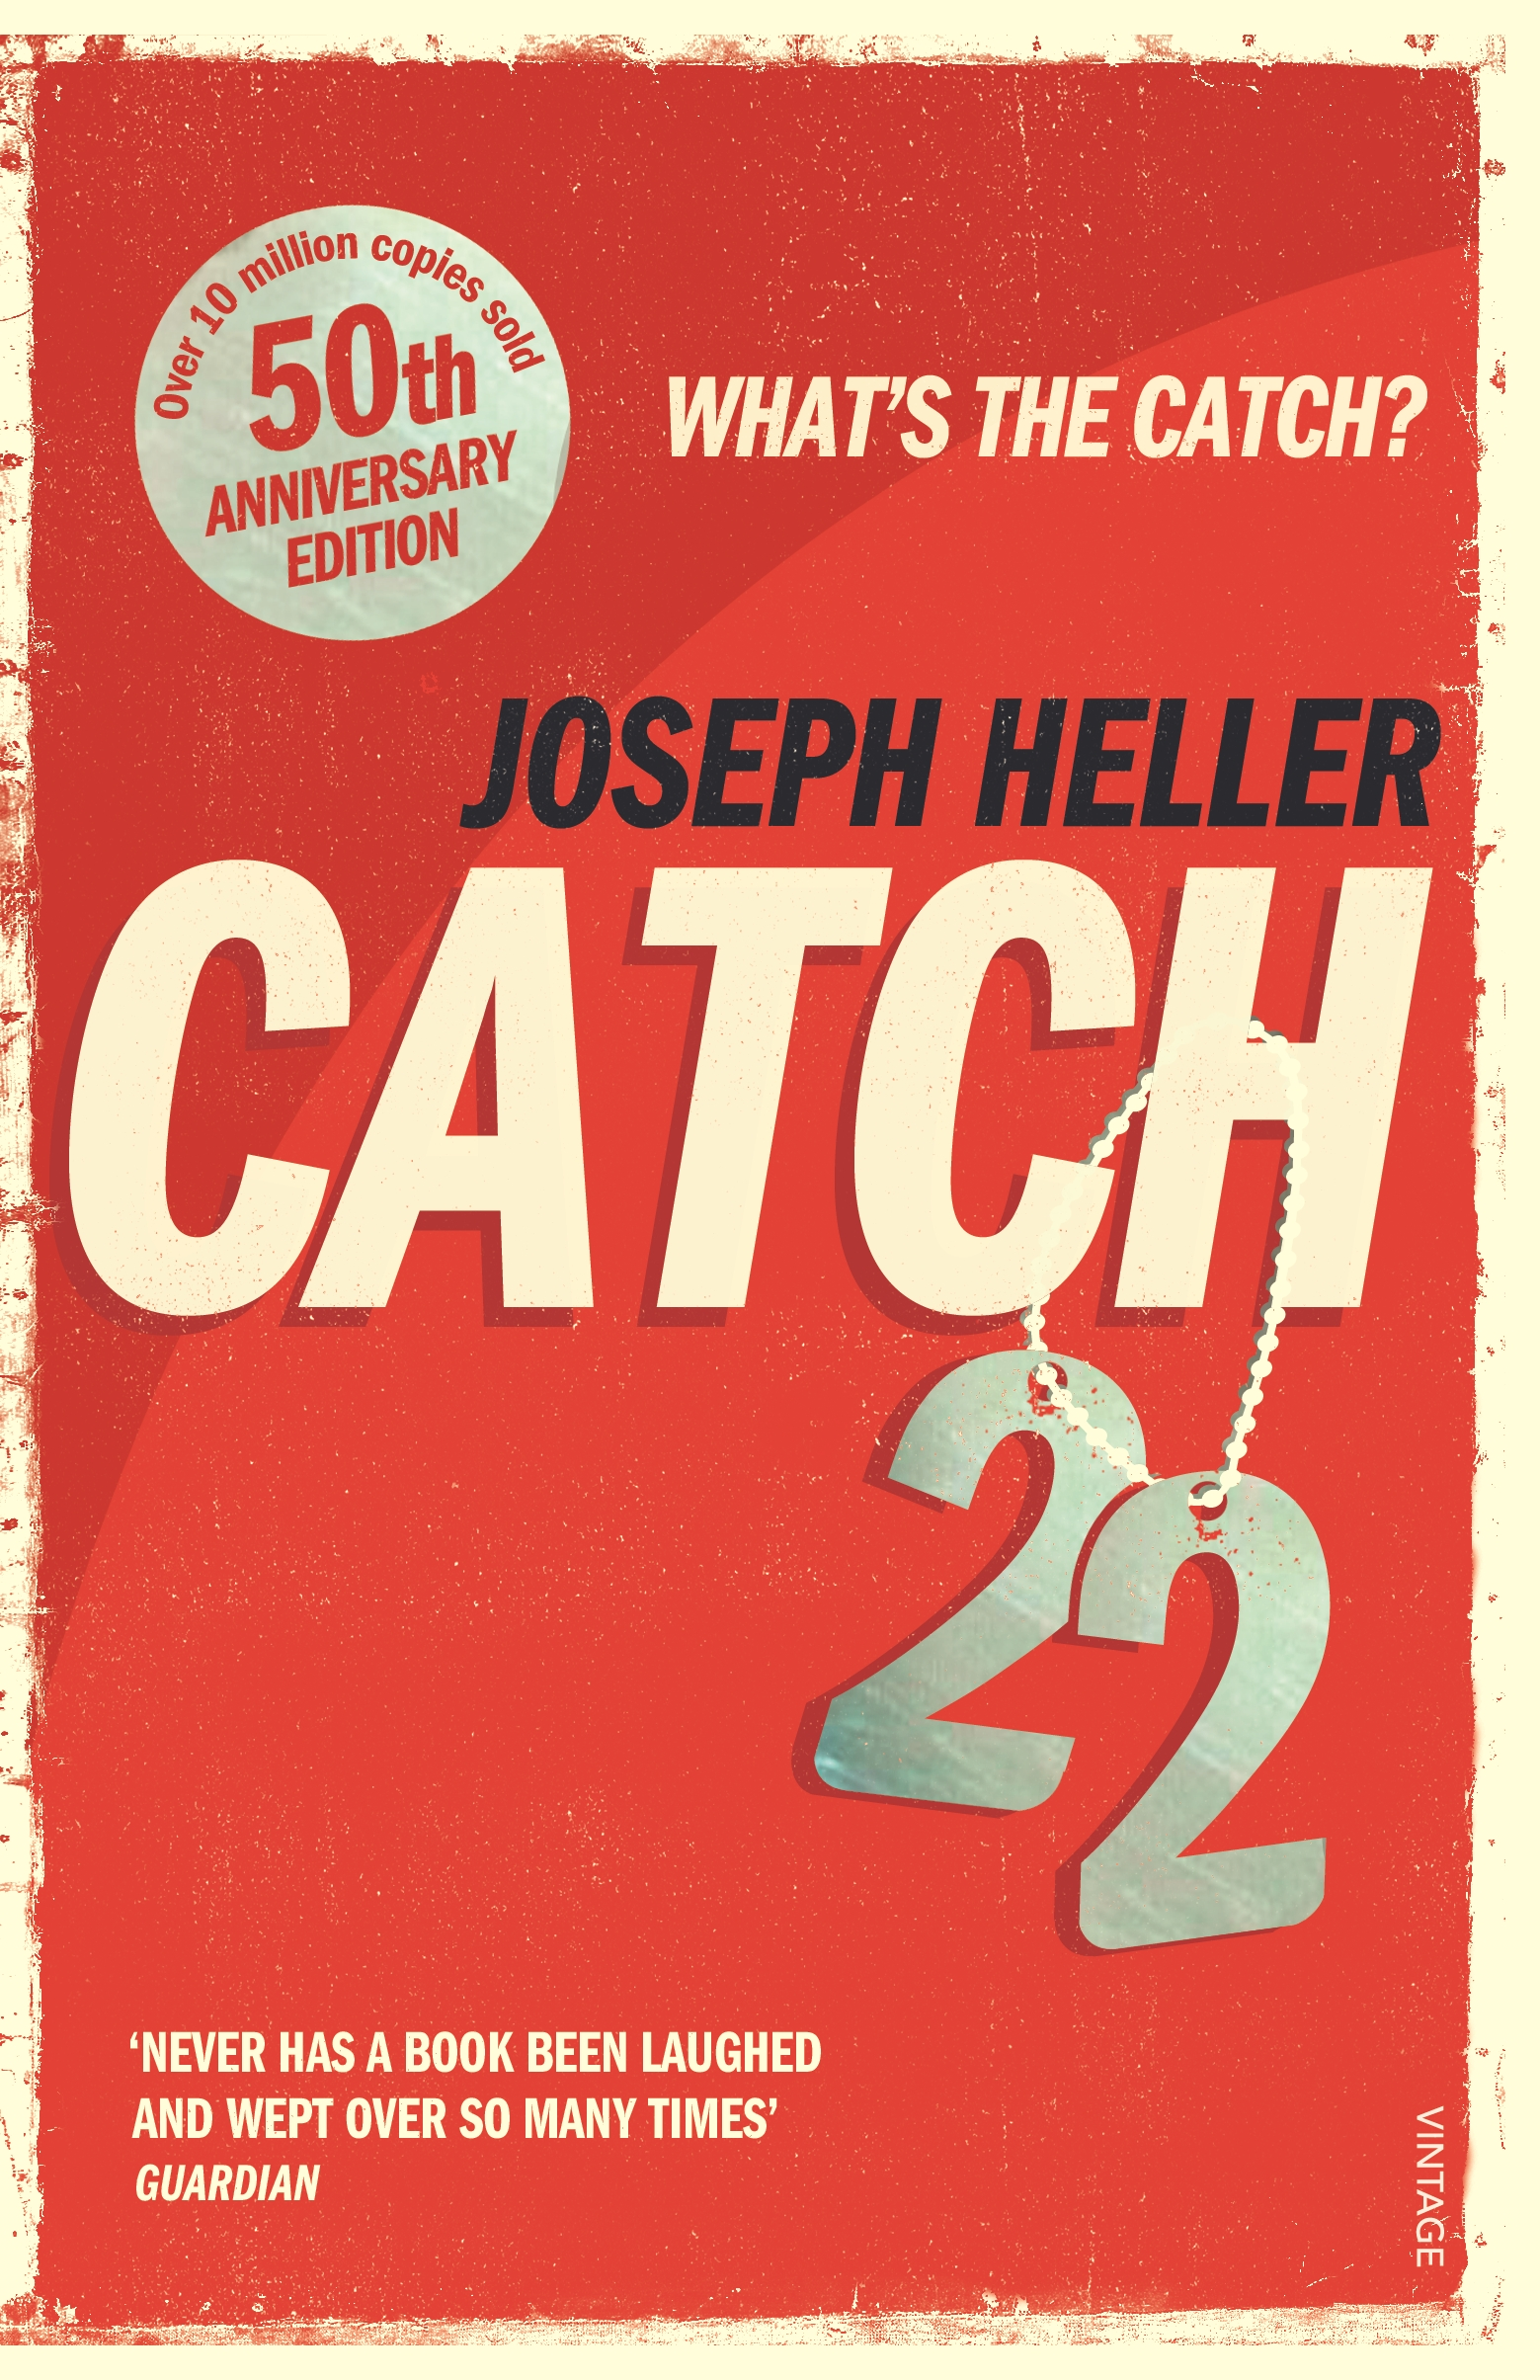 a comparison of catch 22 and good as gold in contemporary novels Free essays available online are good but they will not follow the guidelines of your particular writing assignment if you need a custom term paper on catch 22: catch 22: satire on wwii, you can hire a professional writer here to write you a high quality authentic essay.